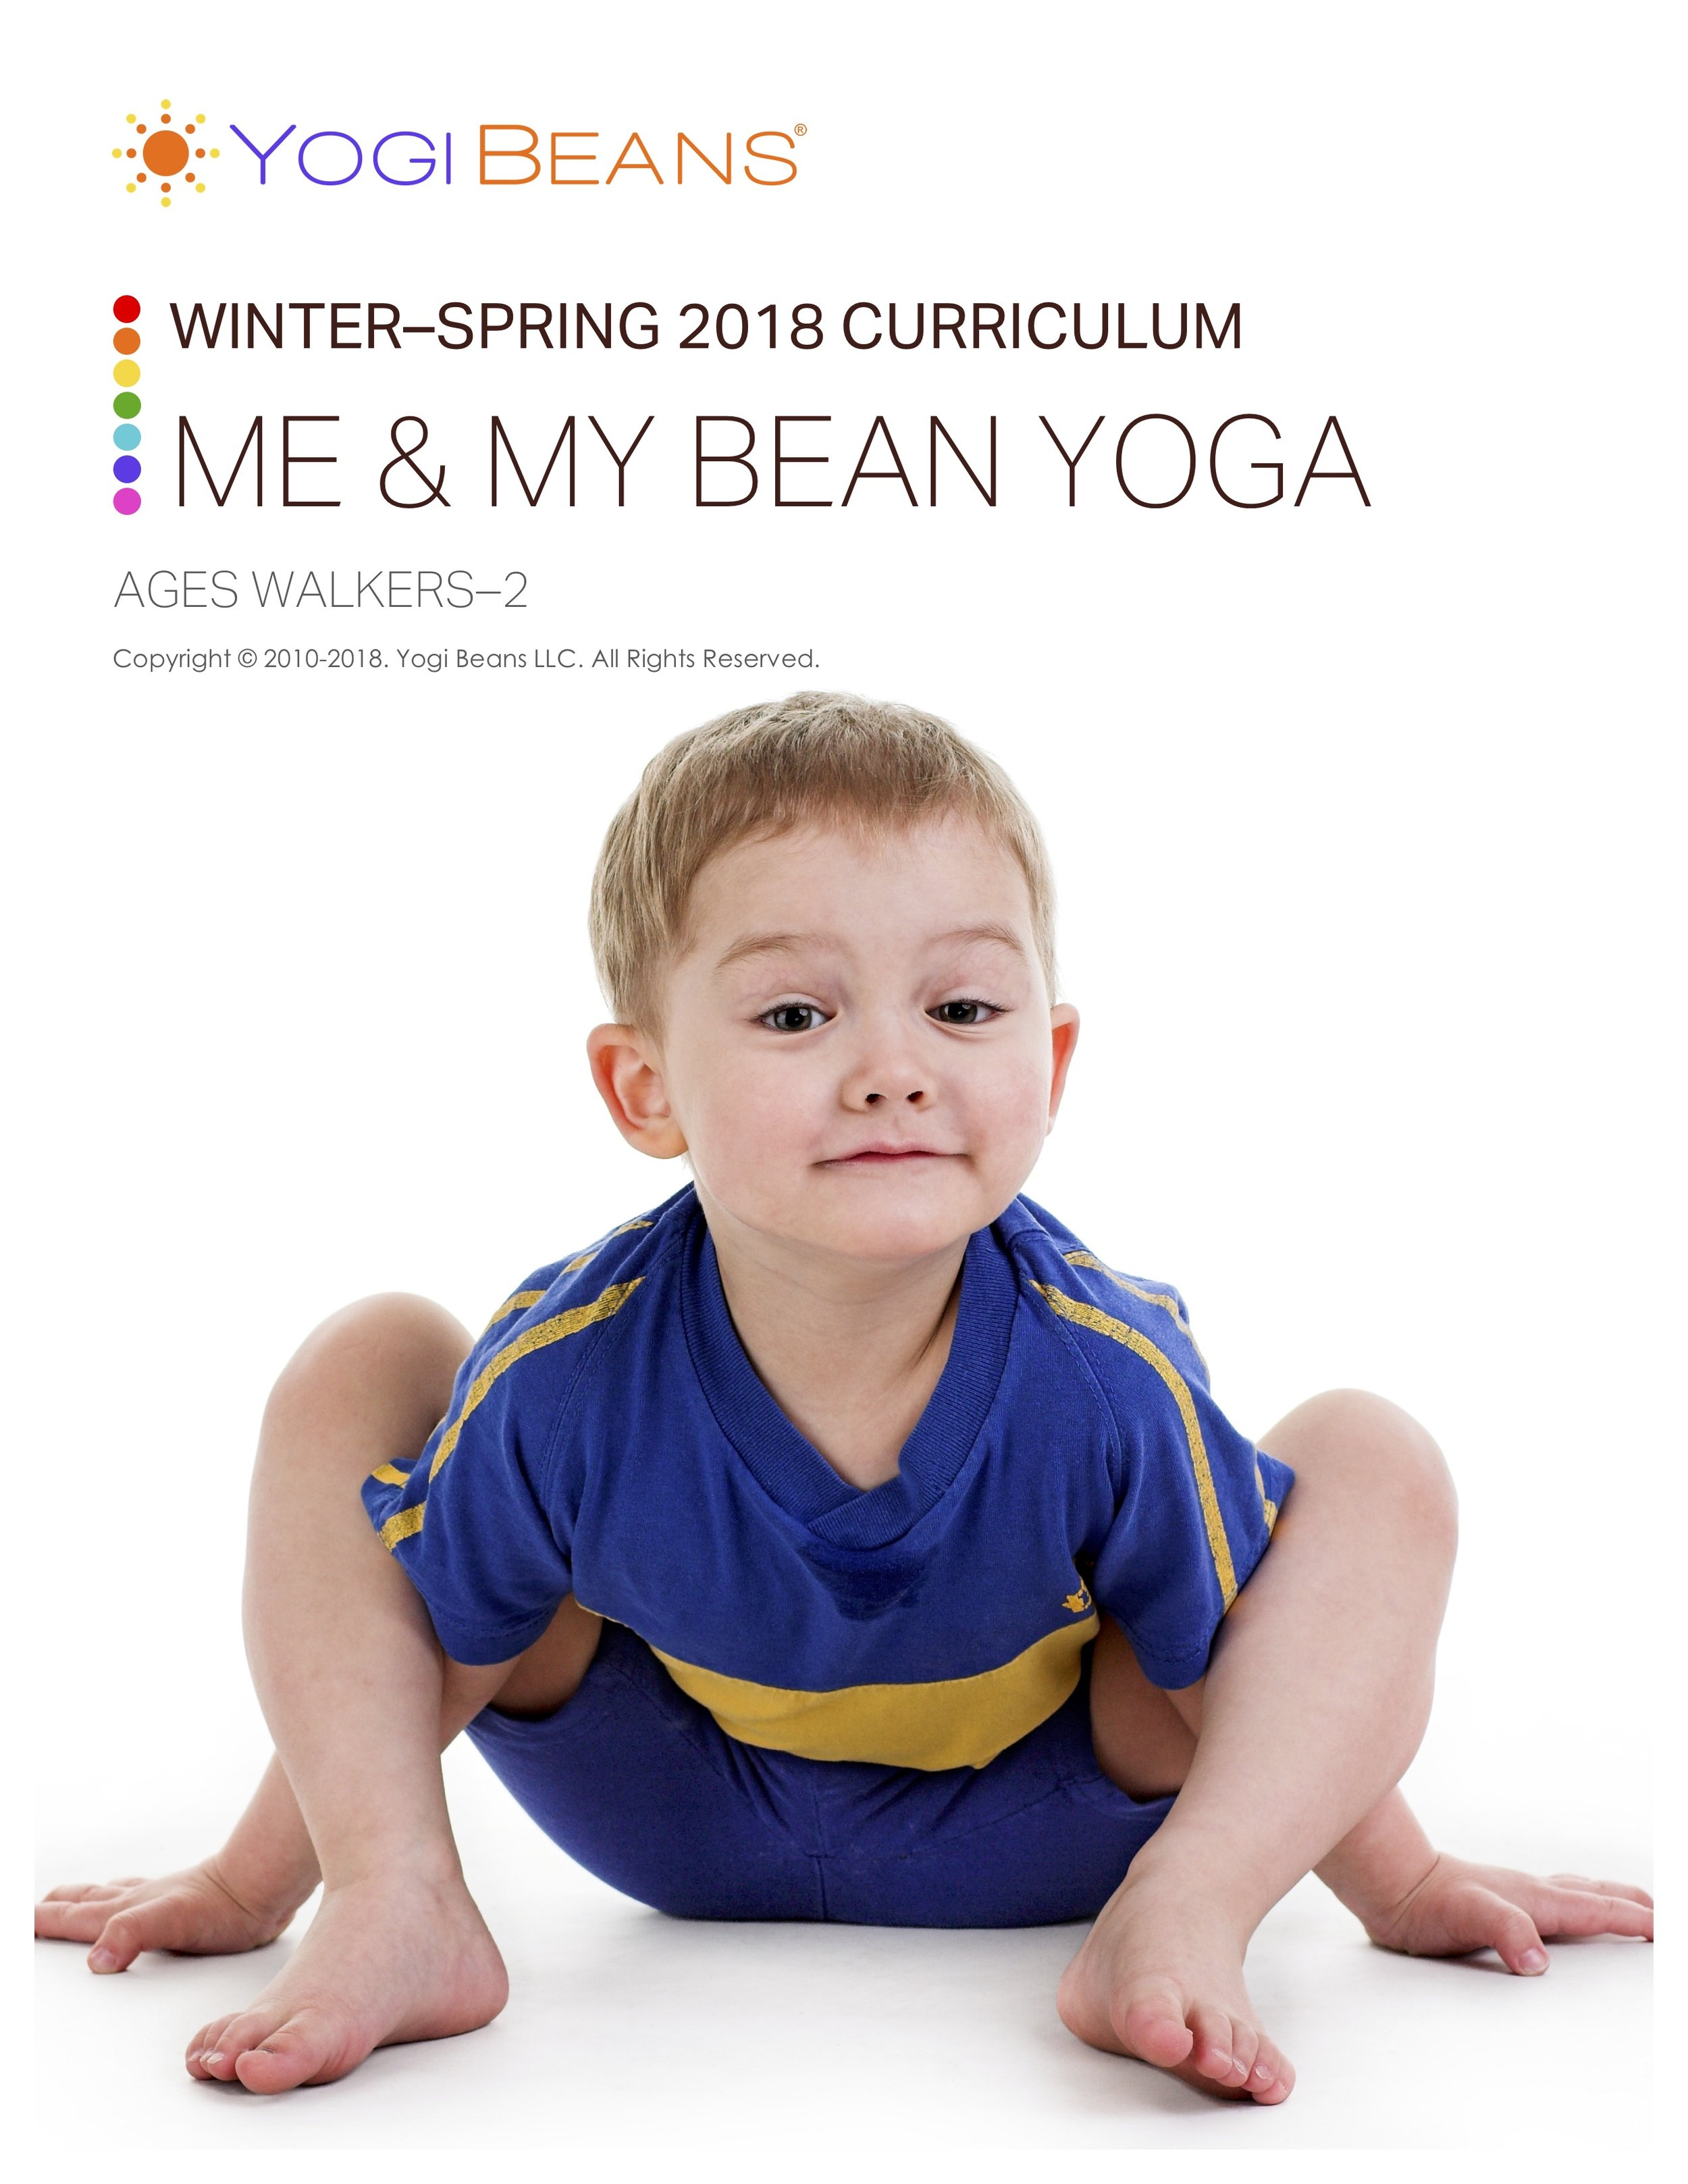 M&MB YOGA (AGES WALK-3)